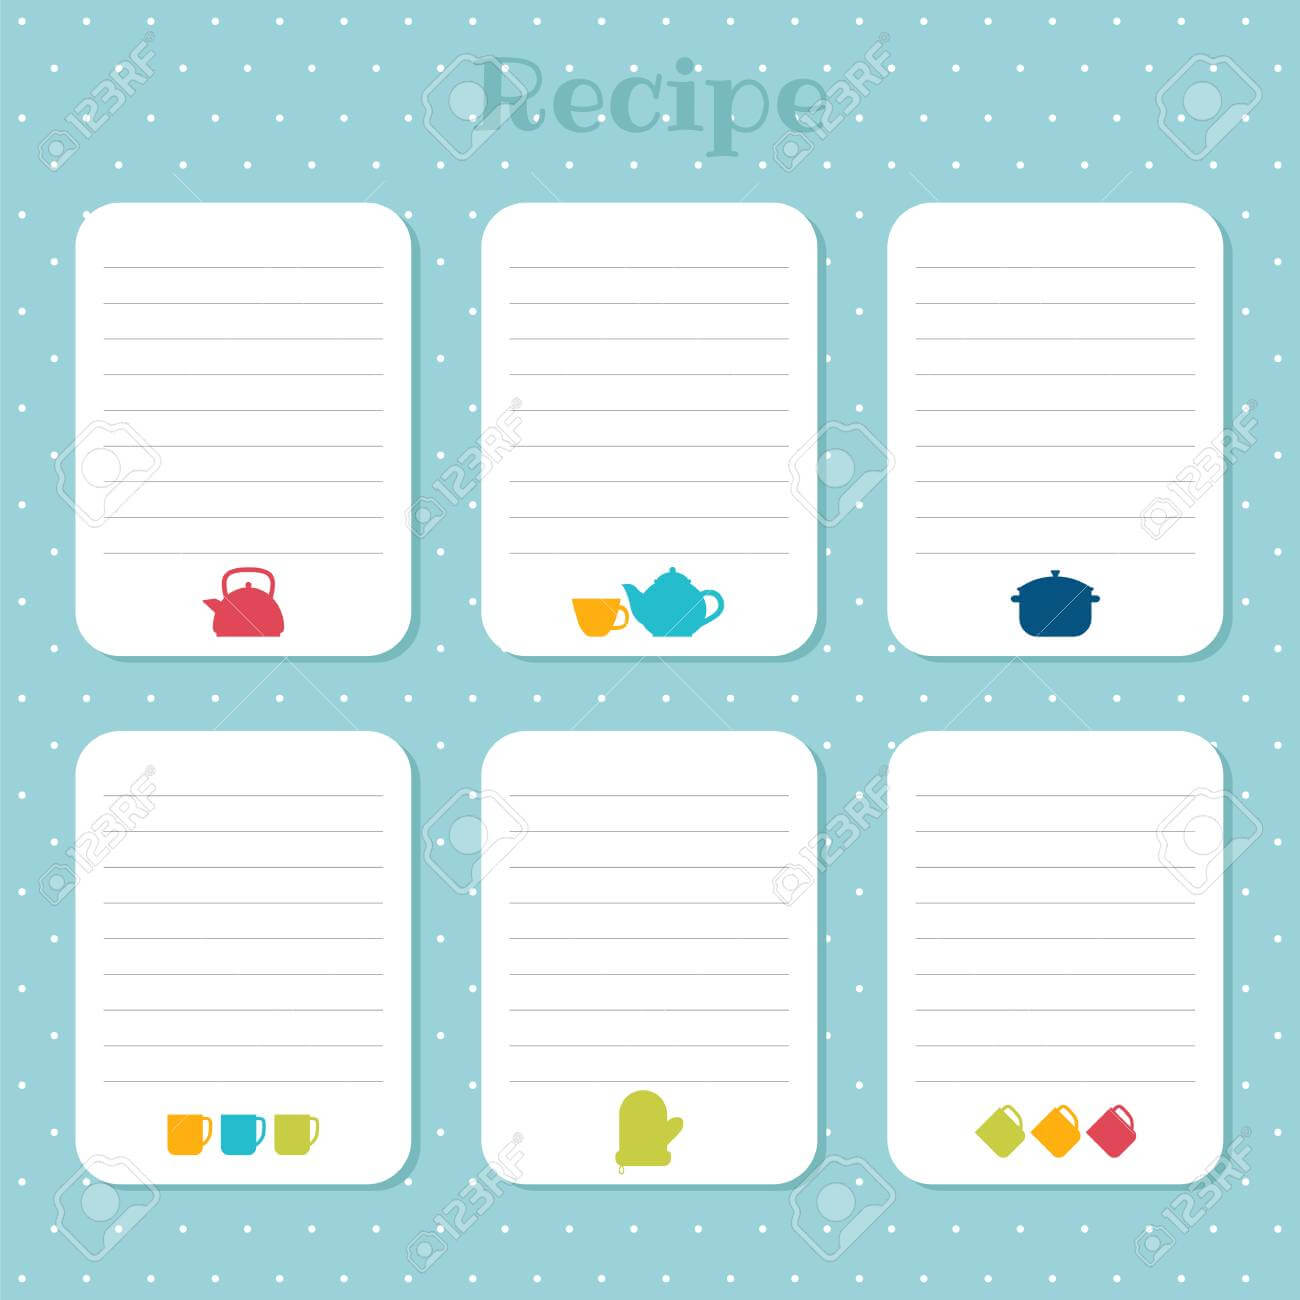 Recipe Cards Set. Cooking Card Templates. For Restaurant, Cafe,.. pertaining to Restaurant Recipe Card Template